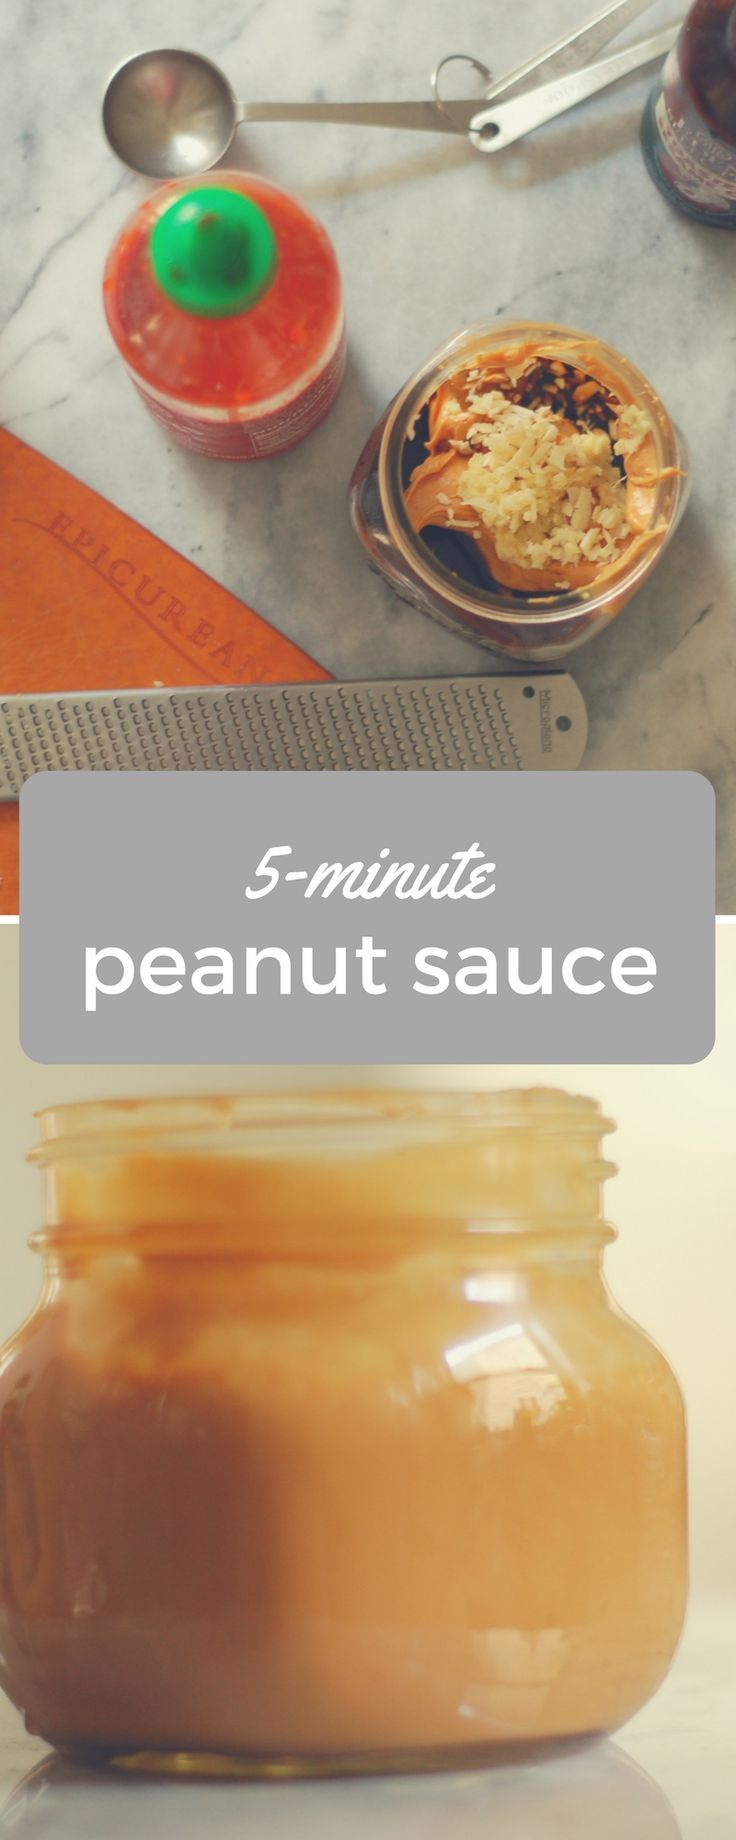 My Go-To Peanut Sauce. An easy recipes for a delicious vegetarian and gluten free sauce, perfect for peanut noodles, satay, dipping vegetables. From Blossom to Stem | Because Delicious | www.blossomtostem.net